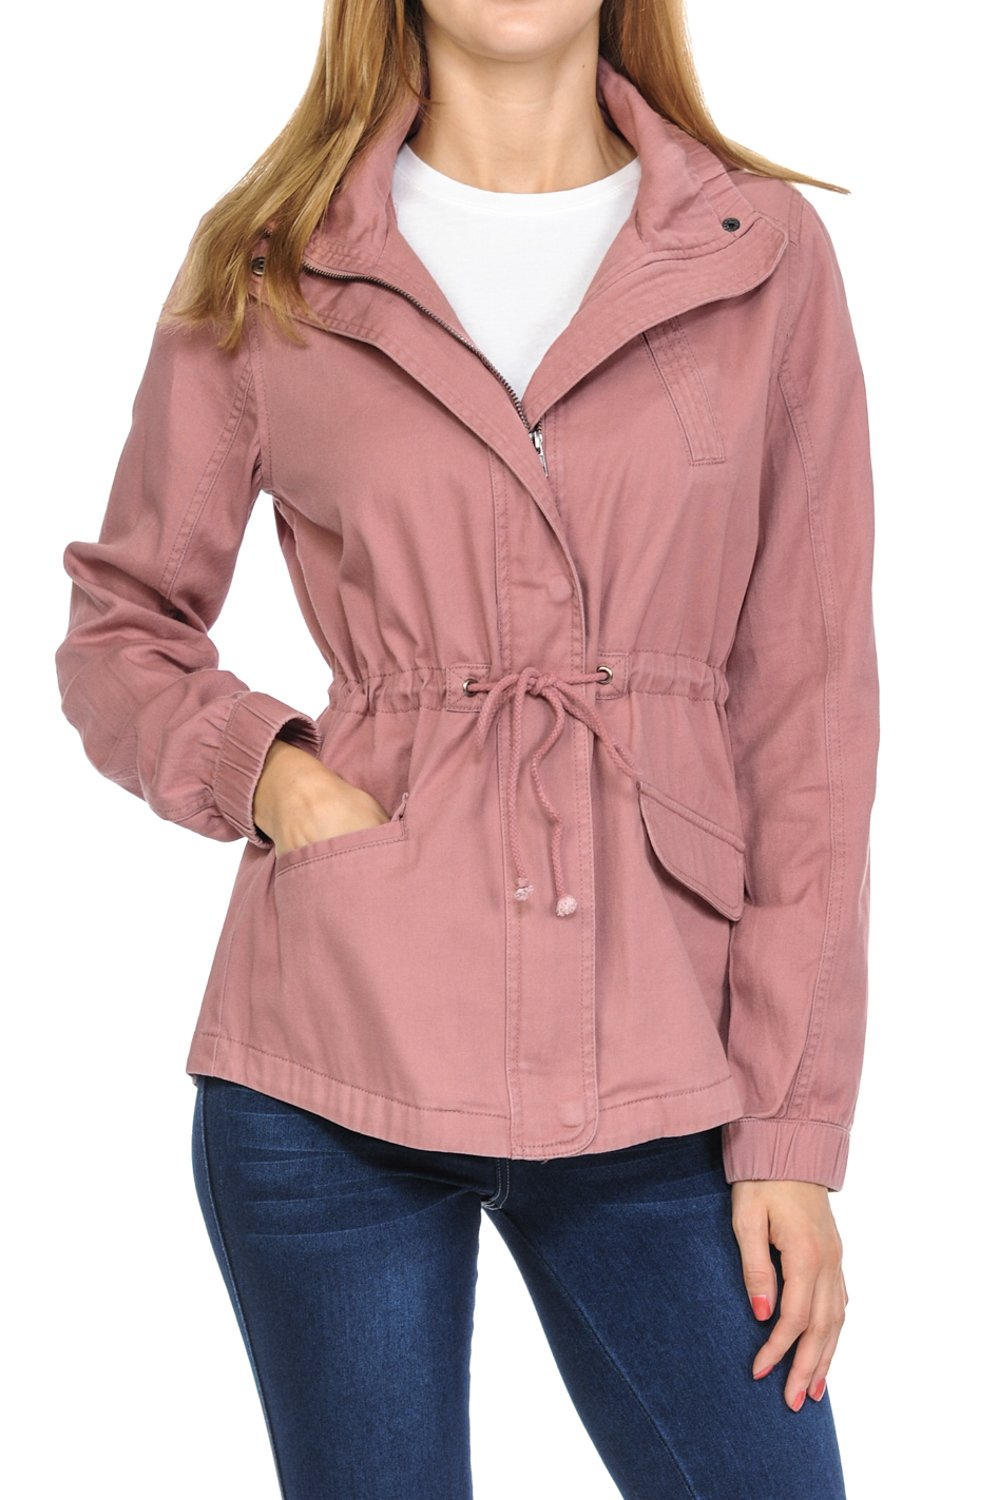 Women's Premium Vintage Wash Lightweight Military Fashion Twill Hoodie Jacket Rose 2XL